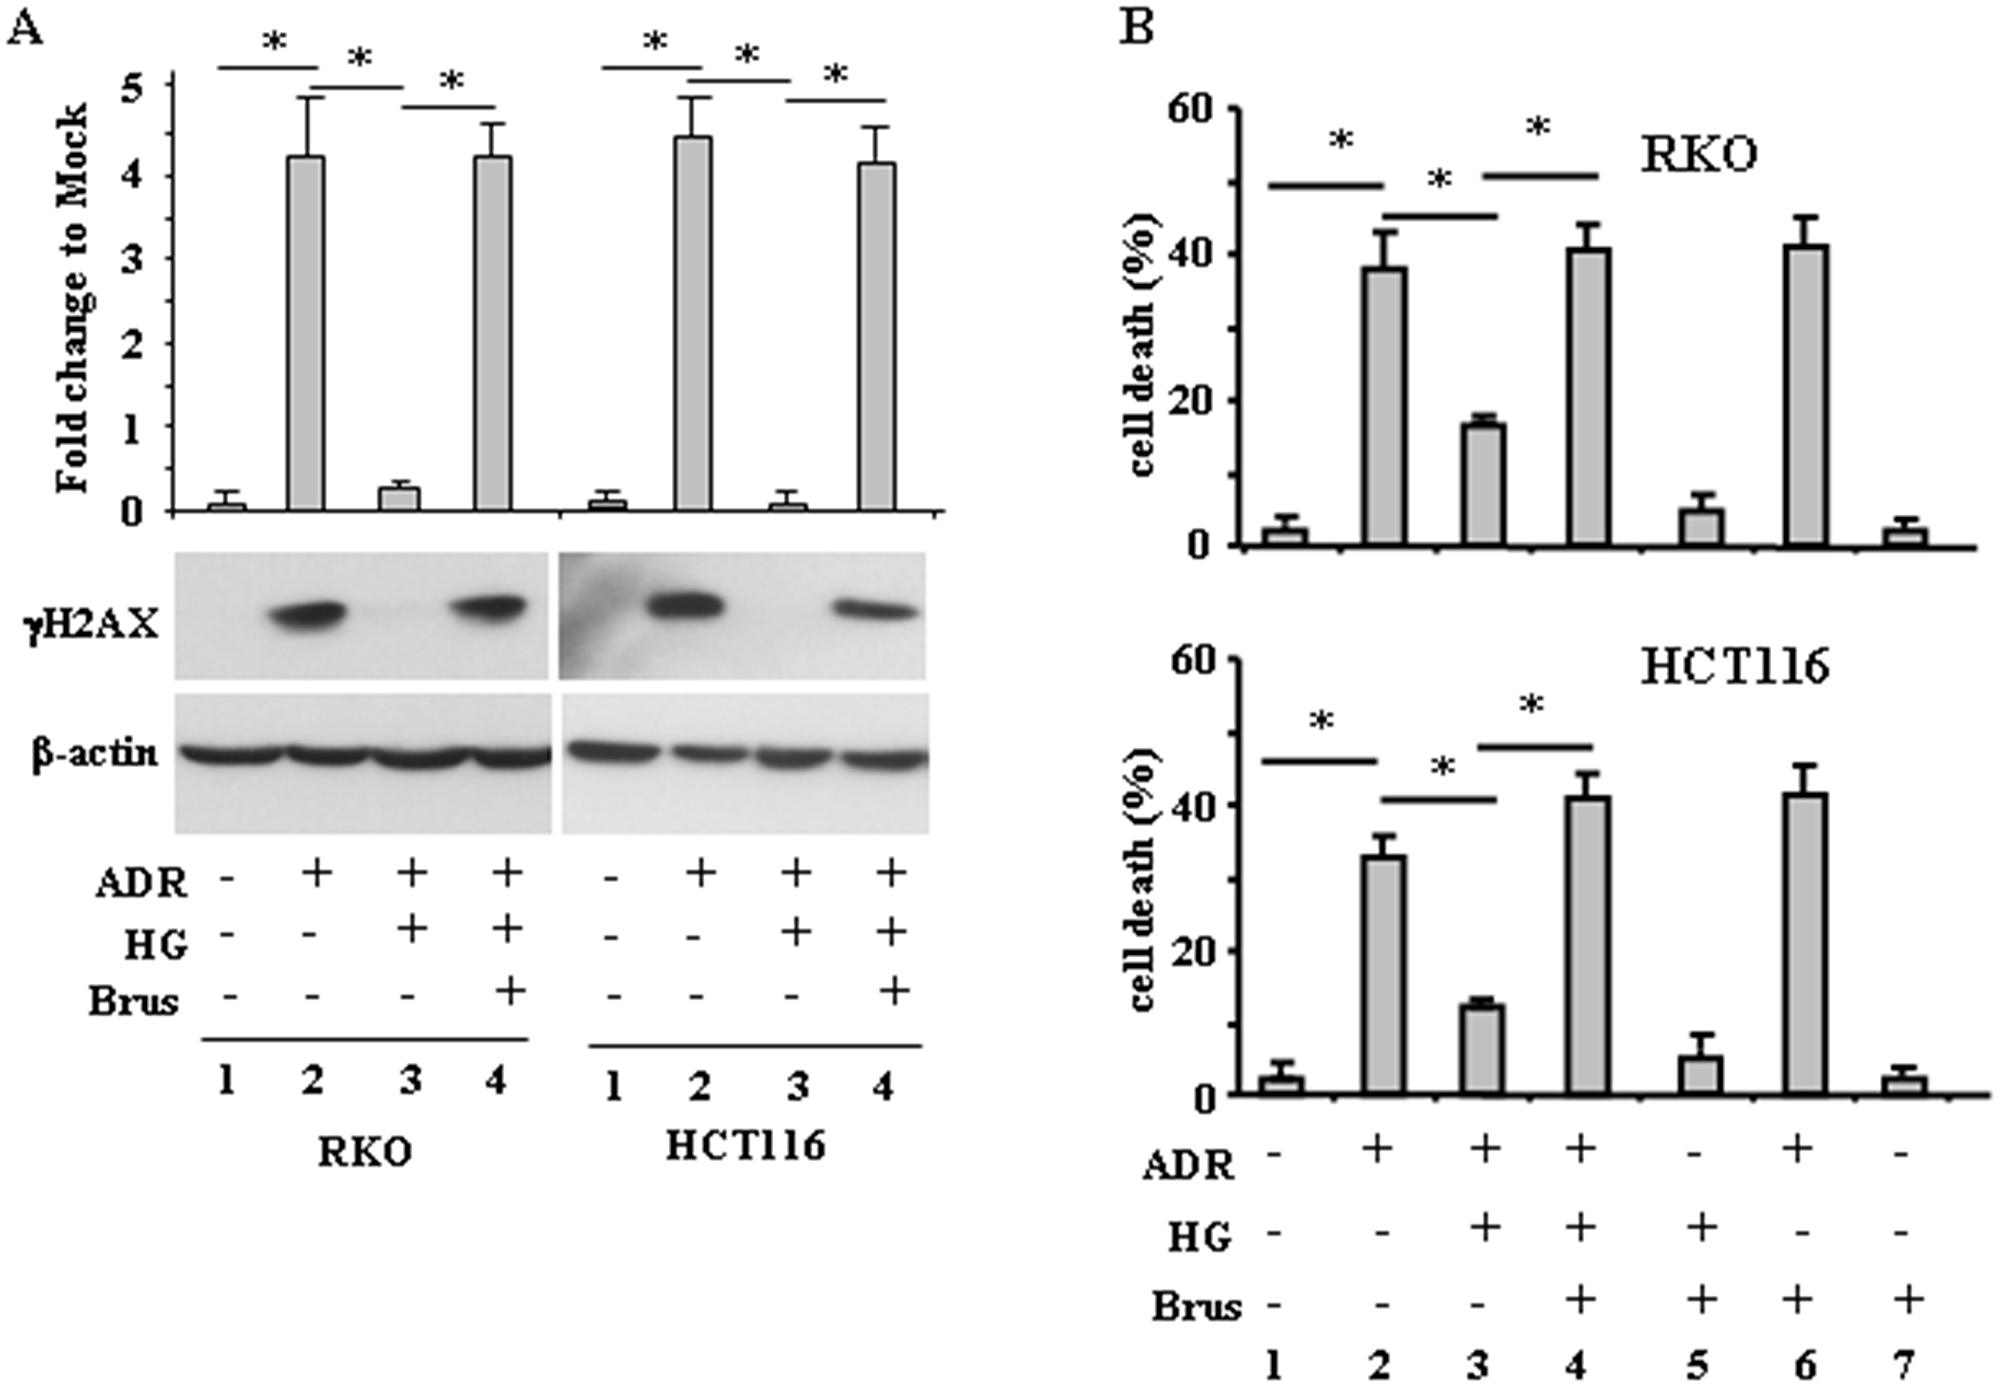 Brusatol restores ADR-induced DNA damage and cell death impaired by HG.